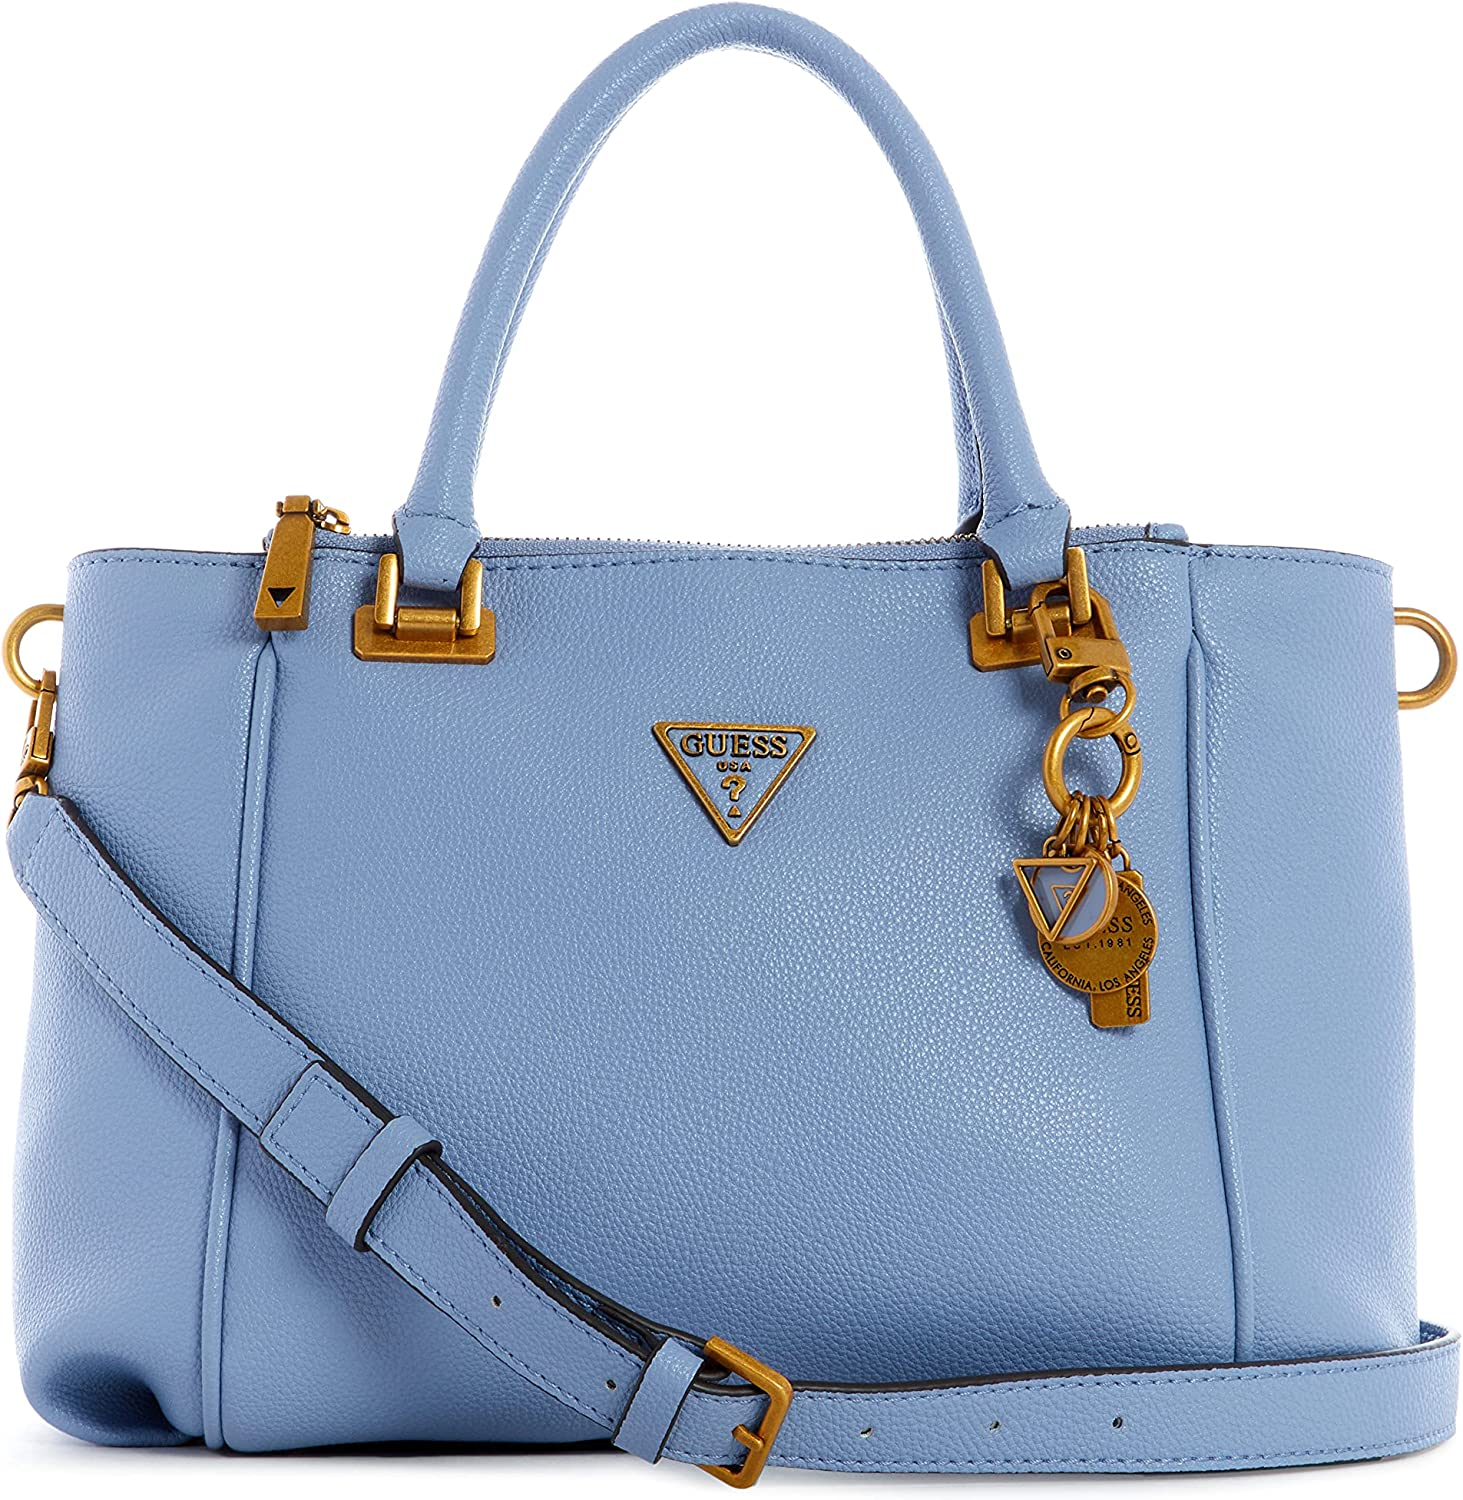 GUESS Destiny Popular brand Fixed price for sale Satchel Status